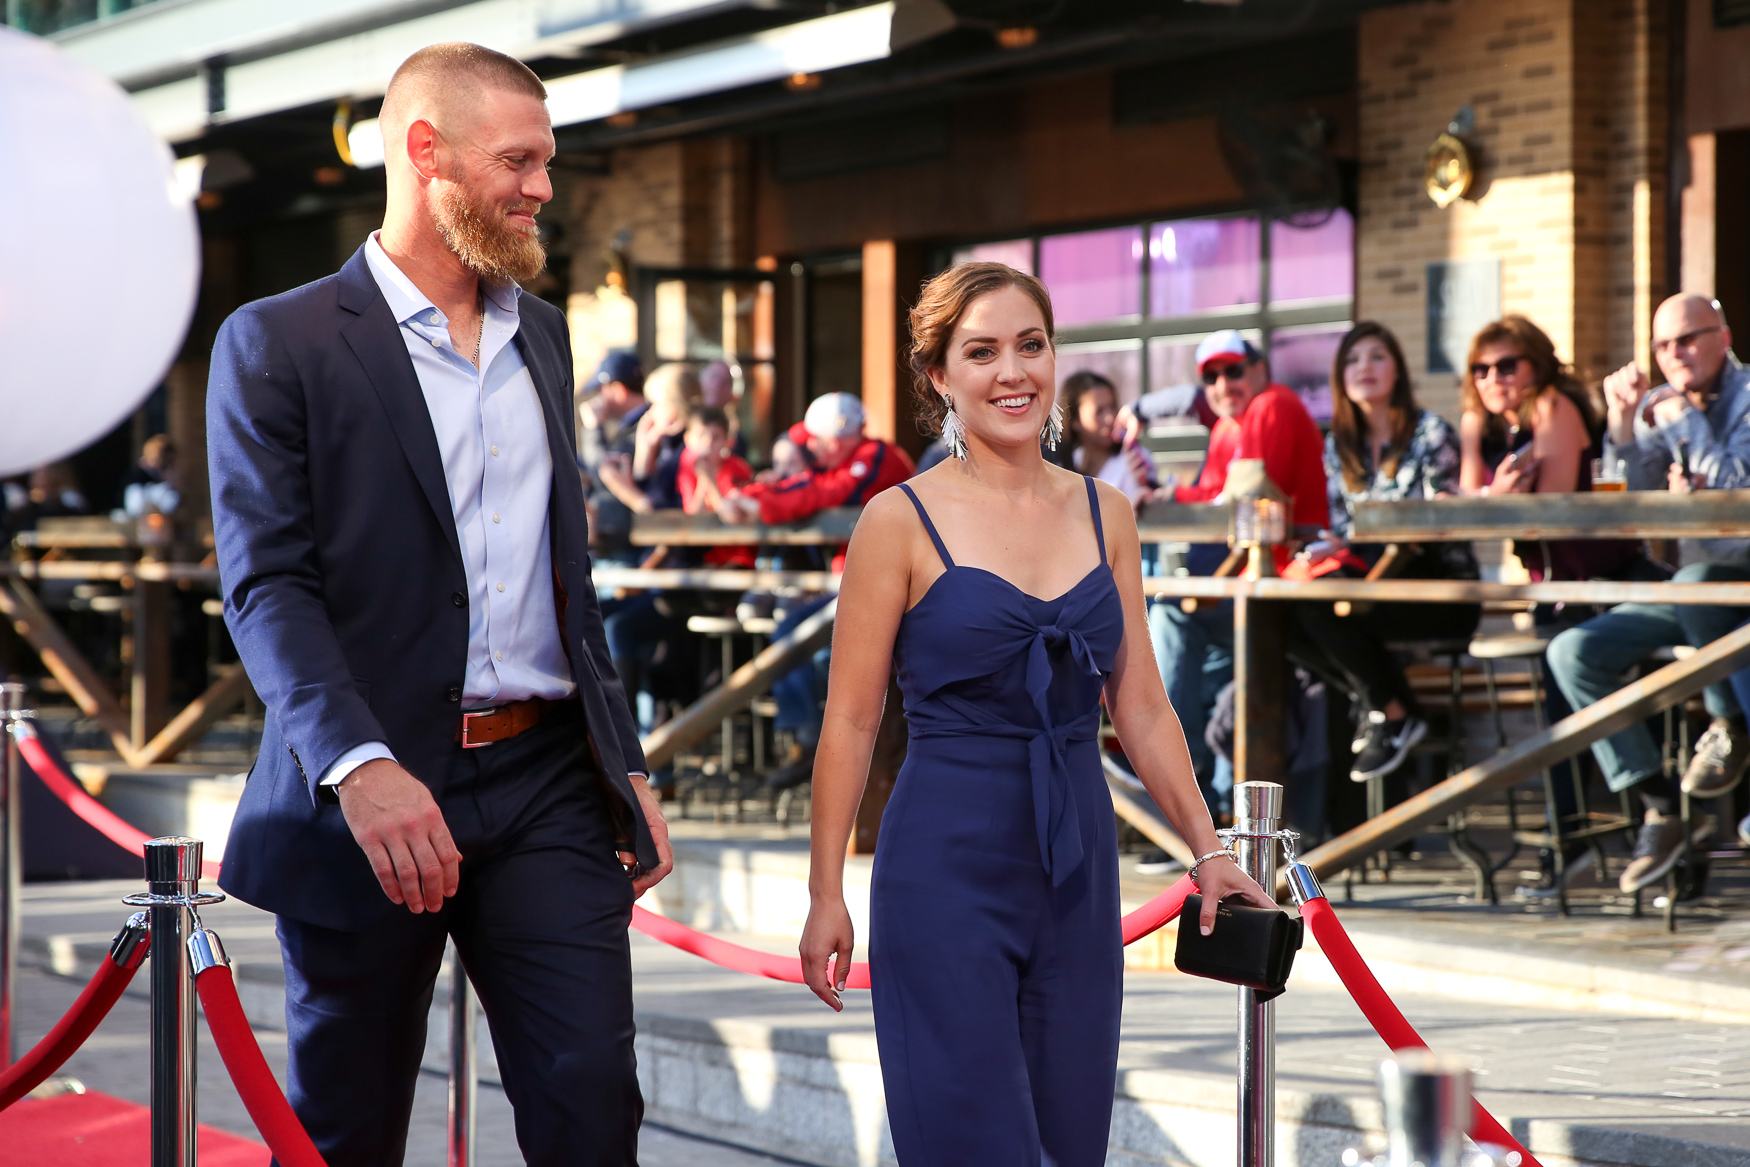 Stephen Strasburg and his wife{ }Rachel Lackey.{ }(Amanda Andrade-Rhoades/DC Refined)